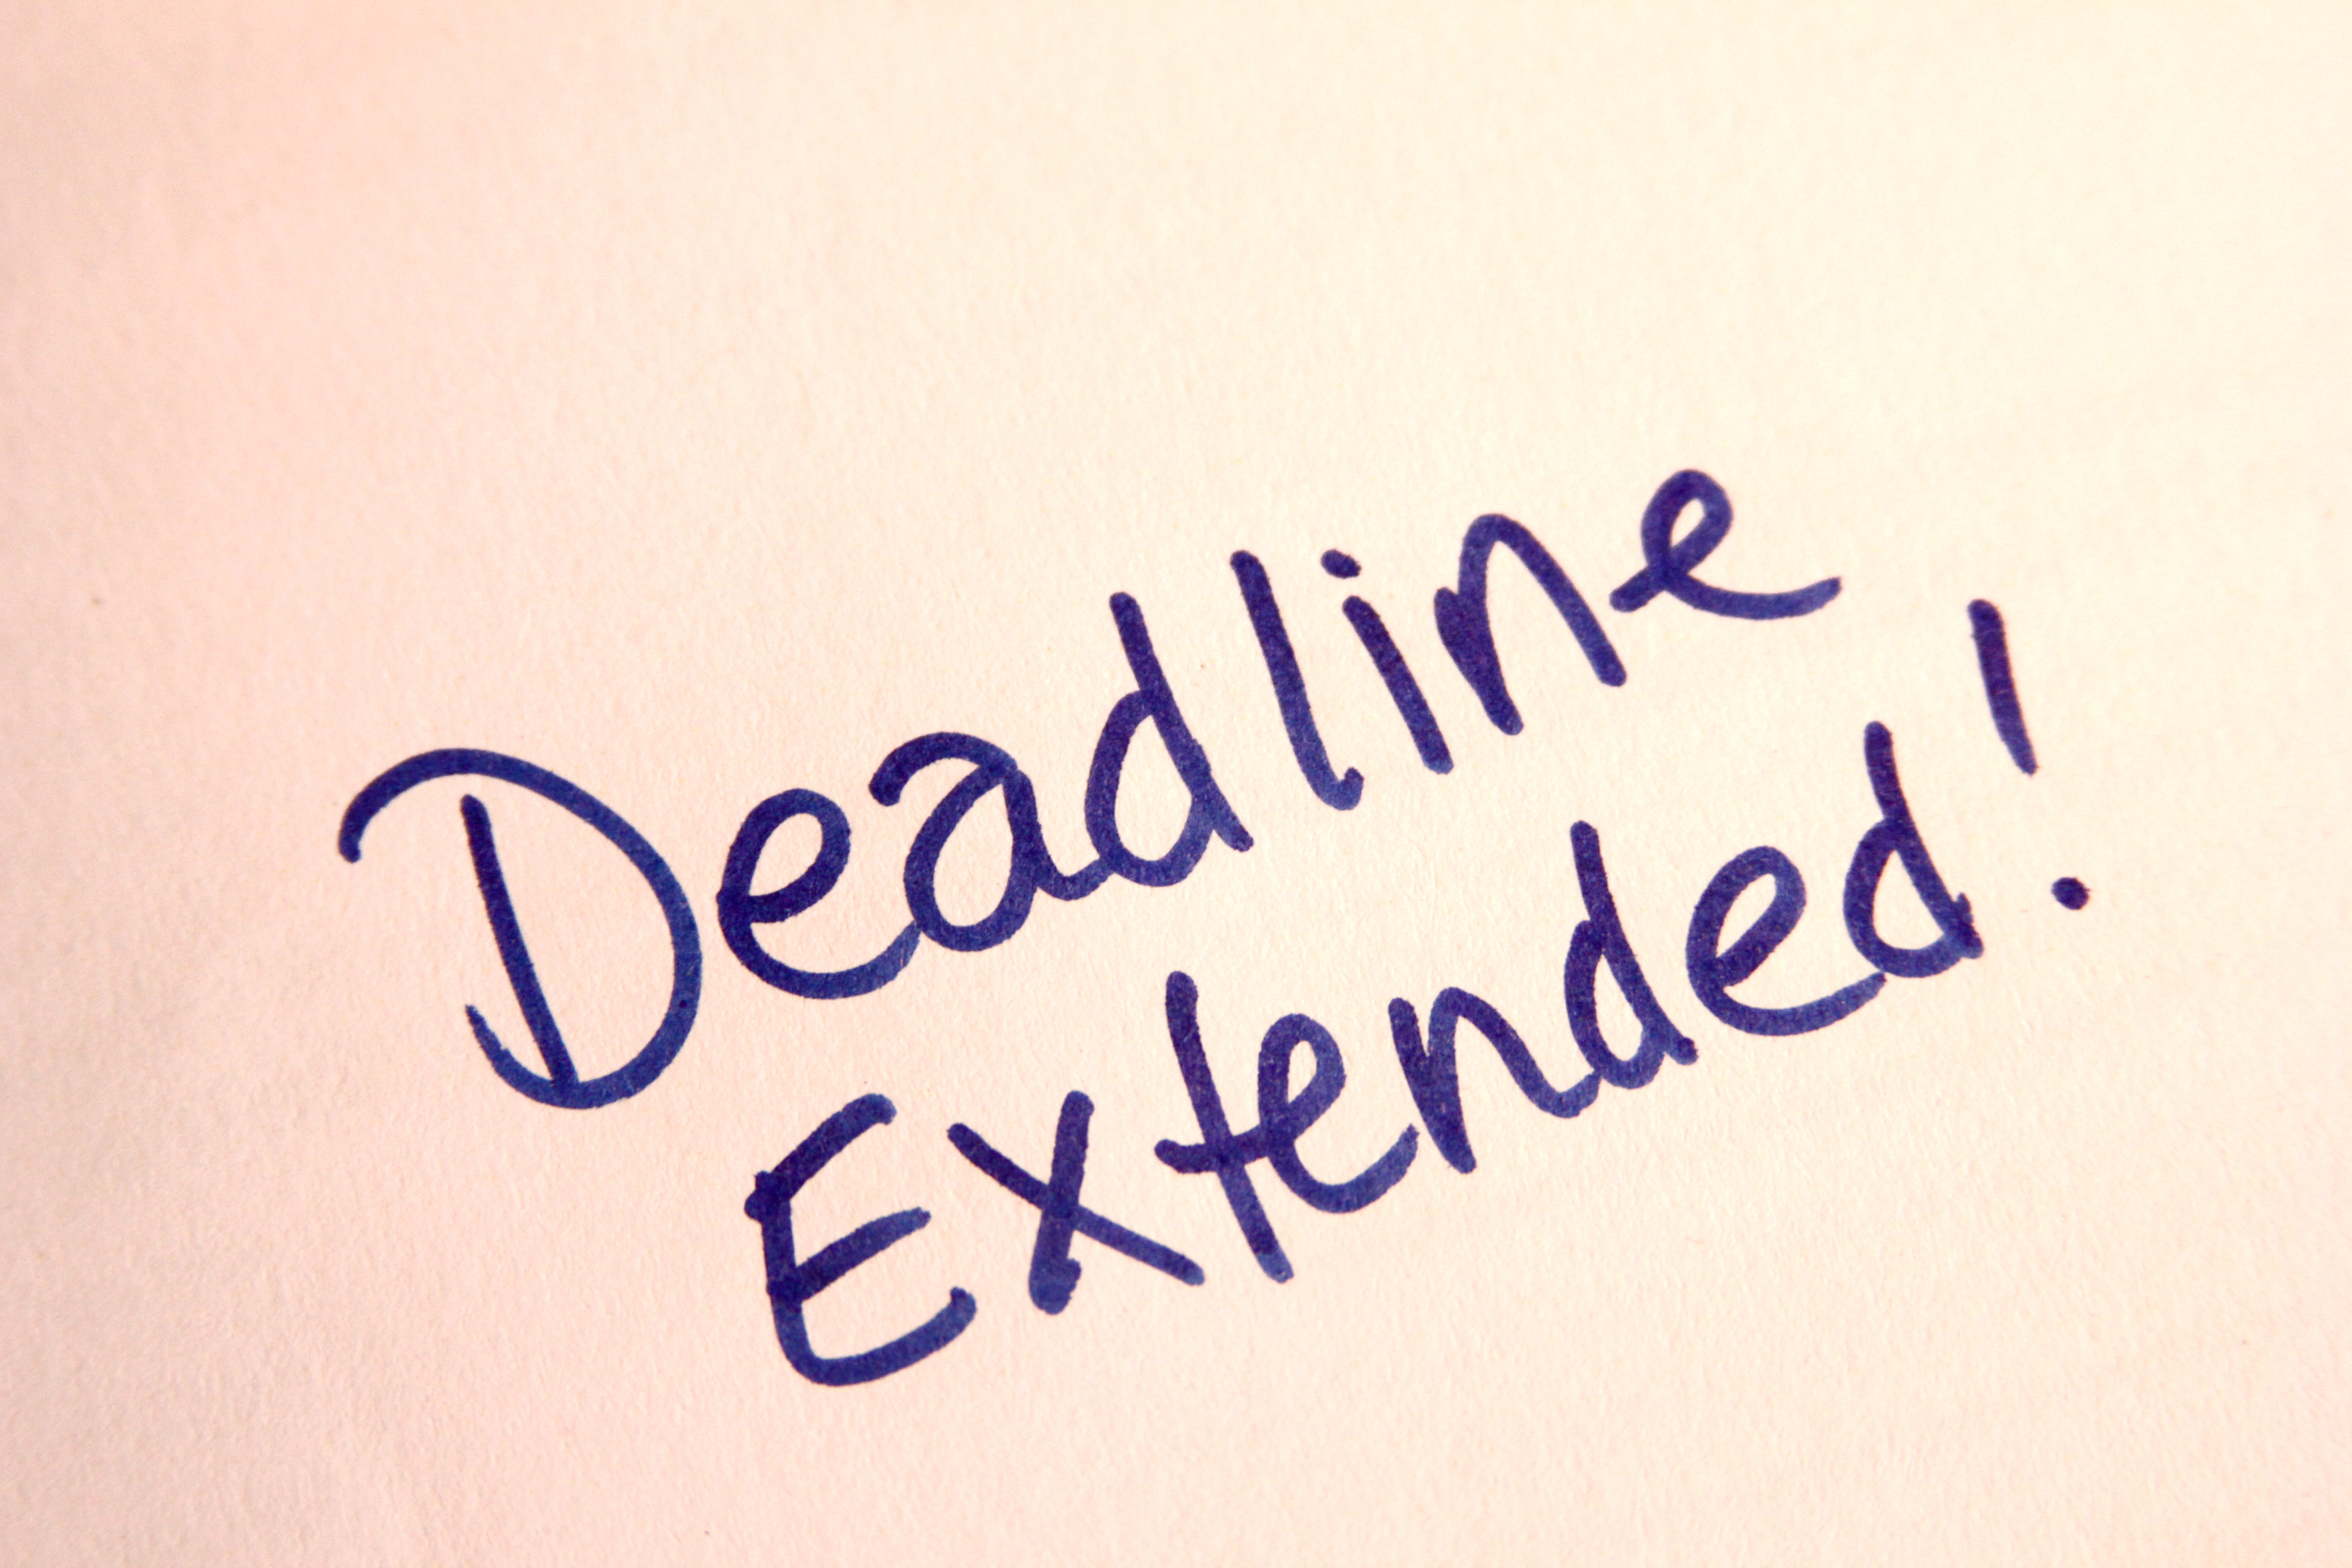 Tender submission date extended